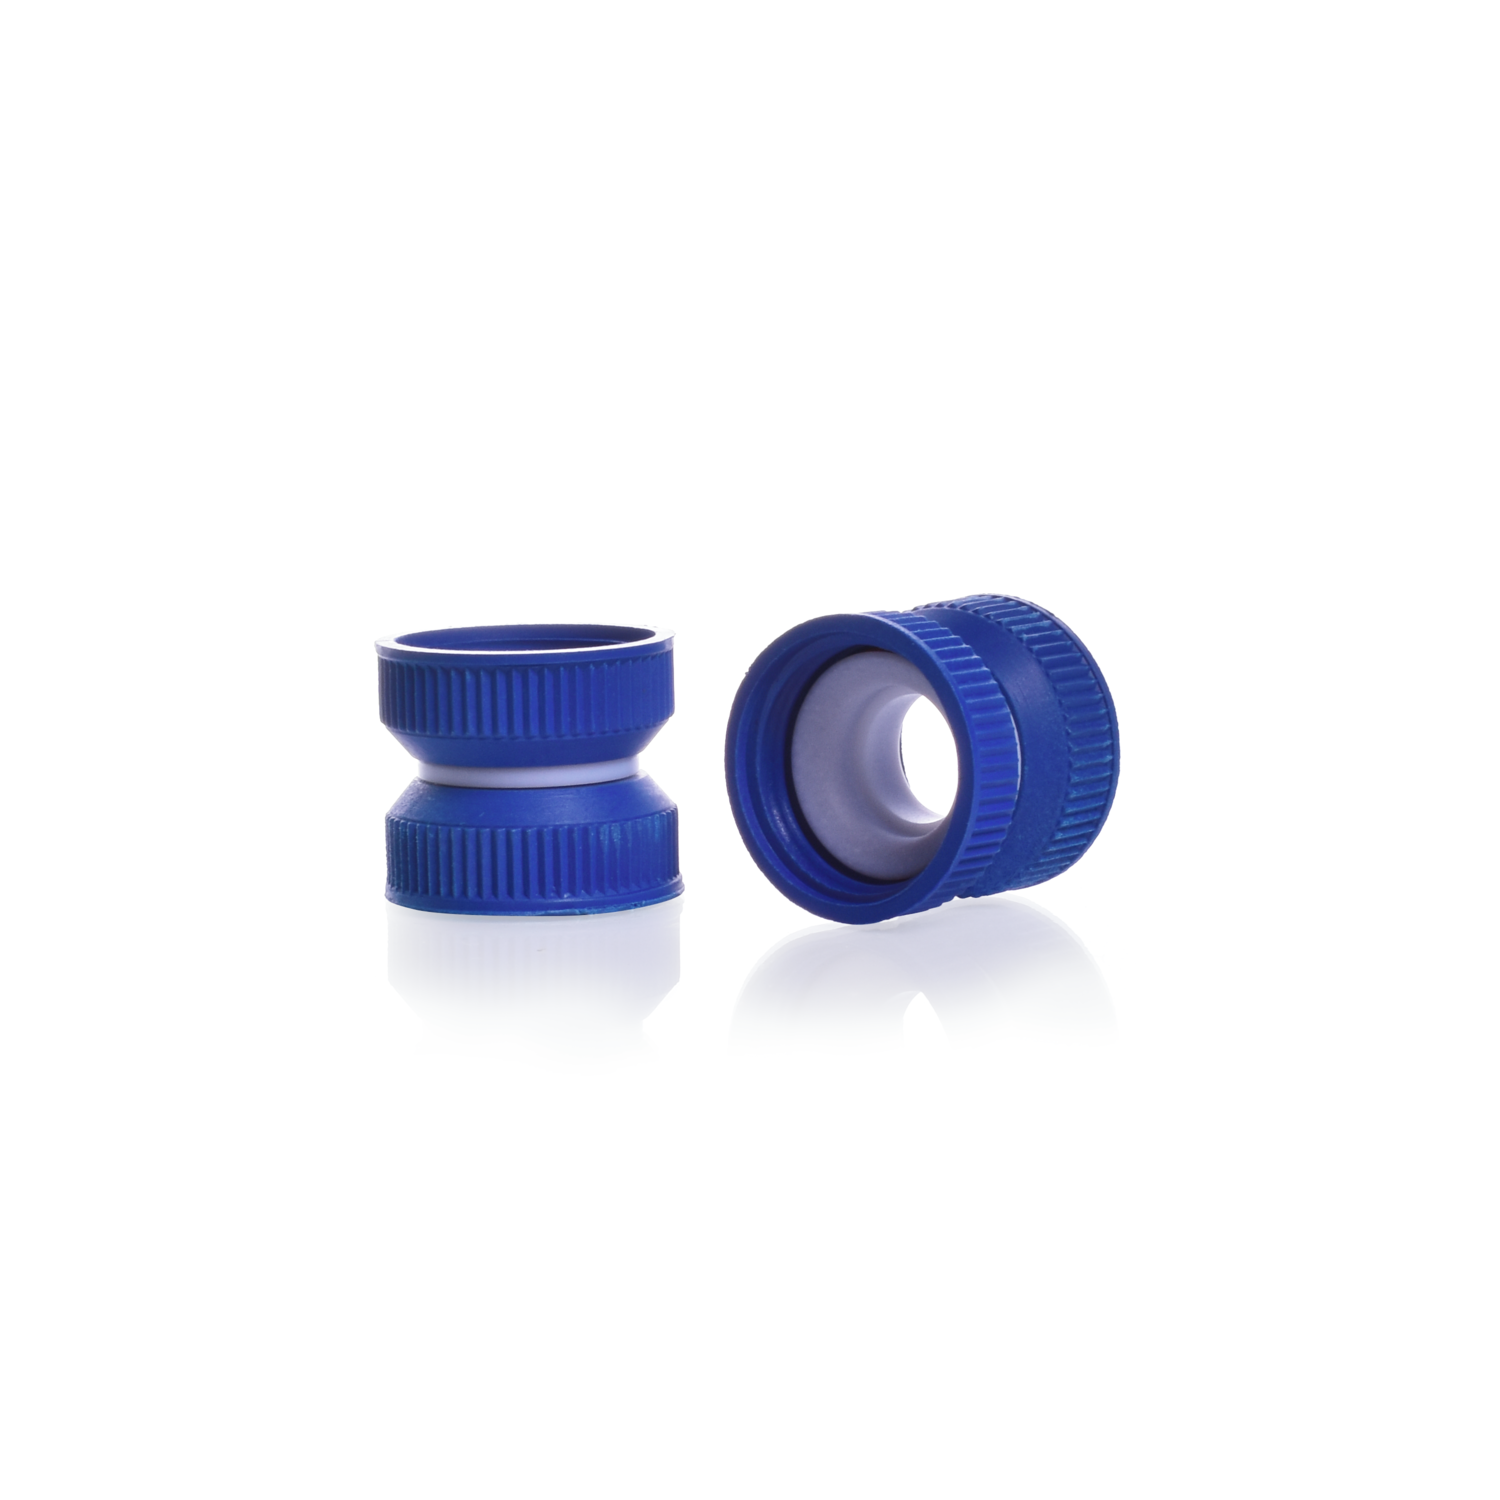 KIMBLE® Threaded Connecting Adapter, 13-425 to 15-425